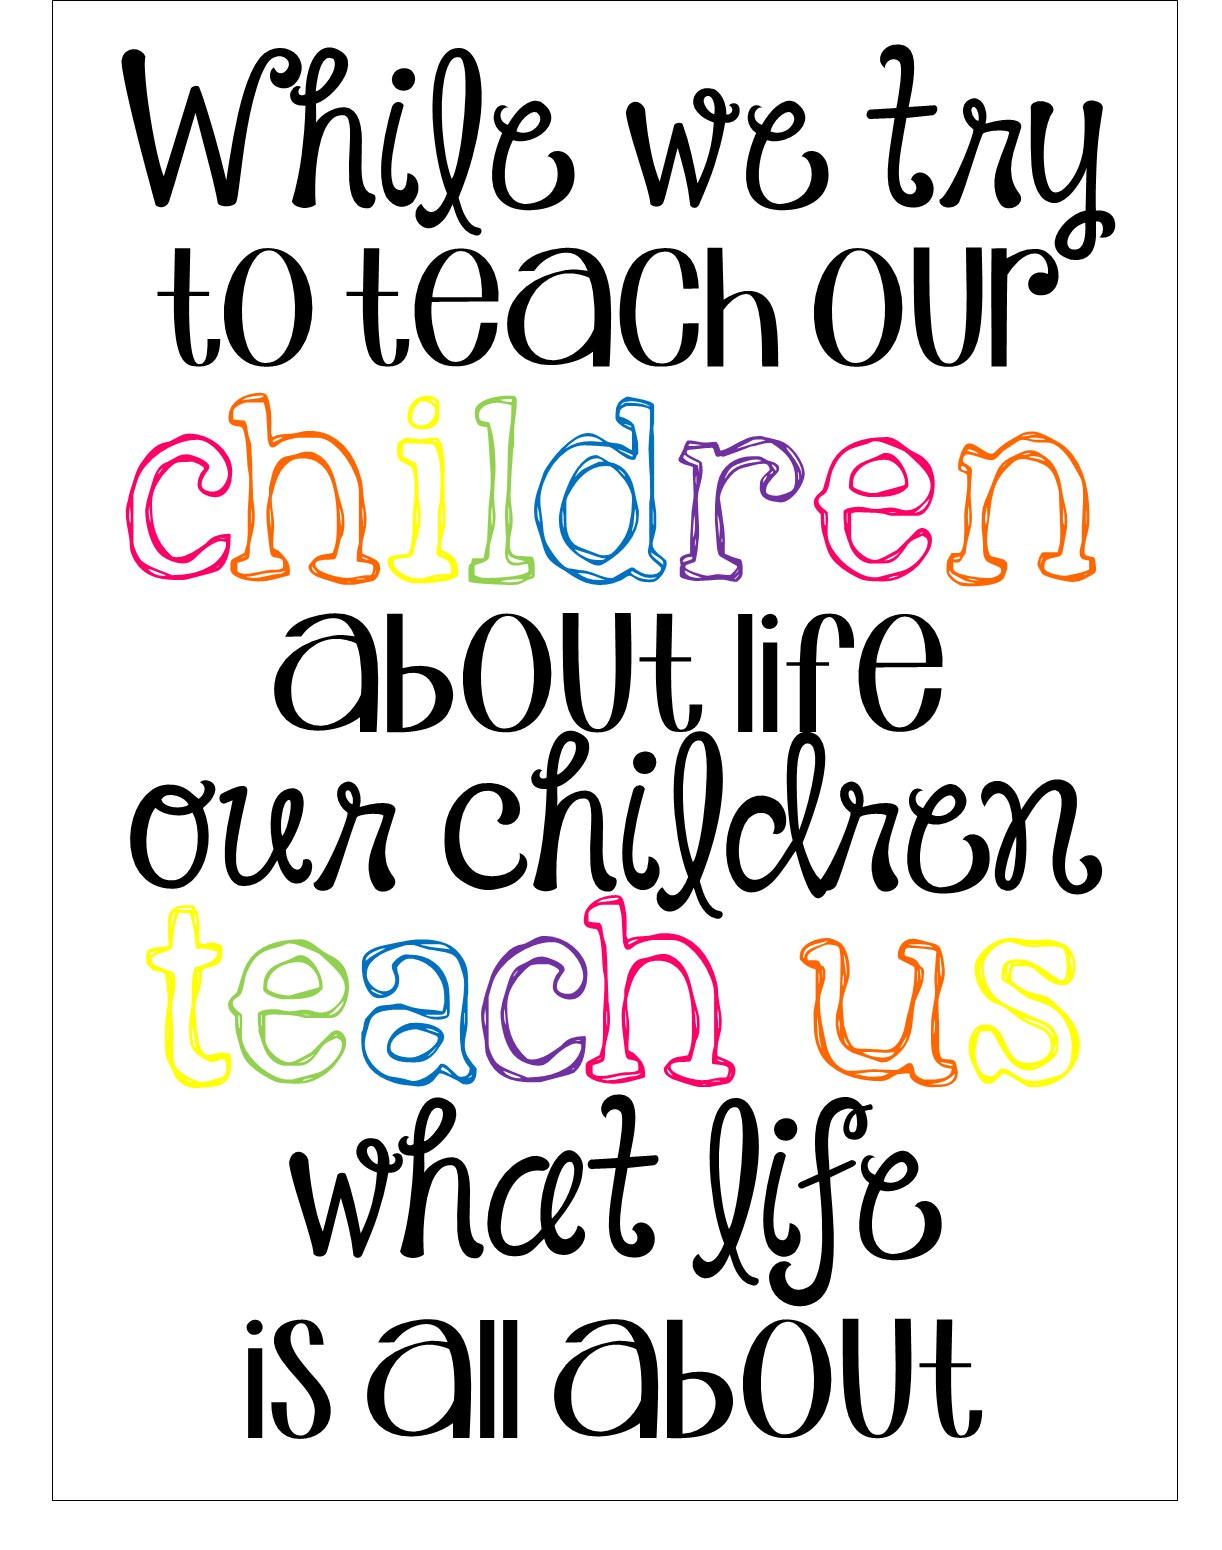 Preschool Teacher Quotes Inspiration Quotes About Science Teachers 50 Quotes